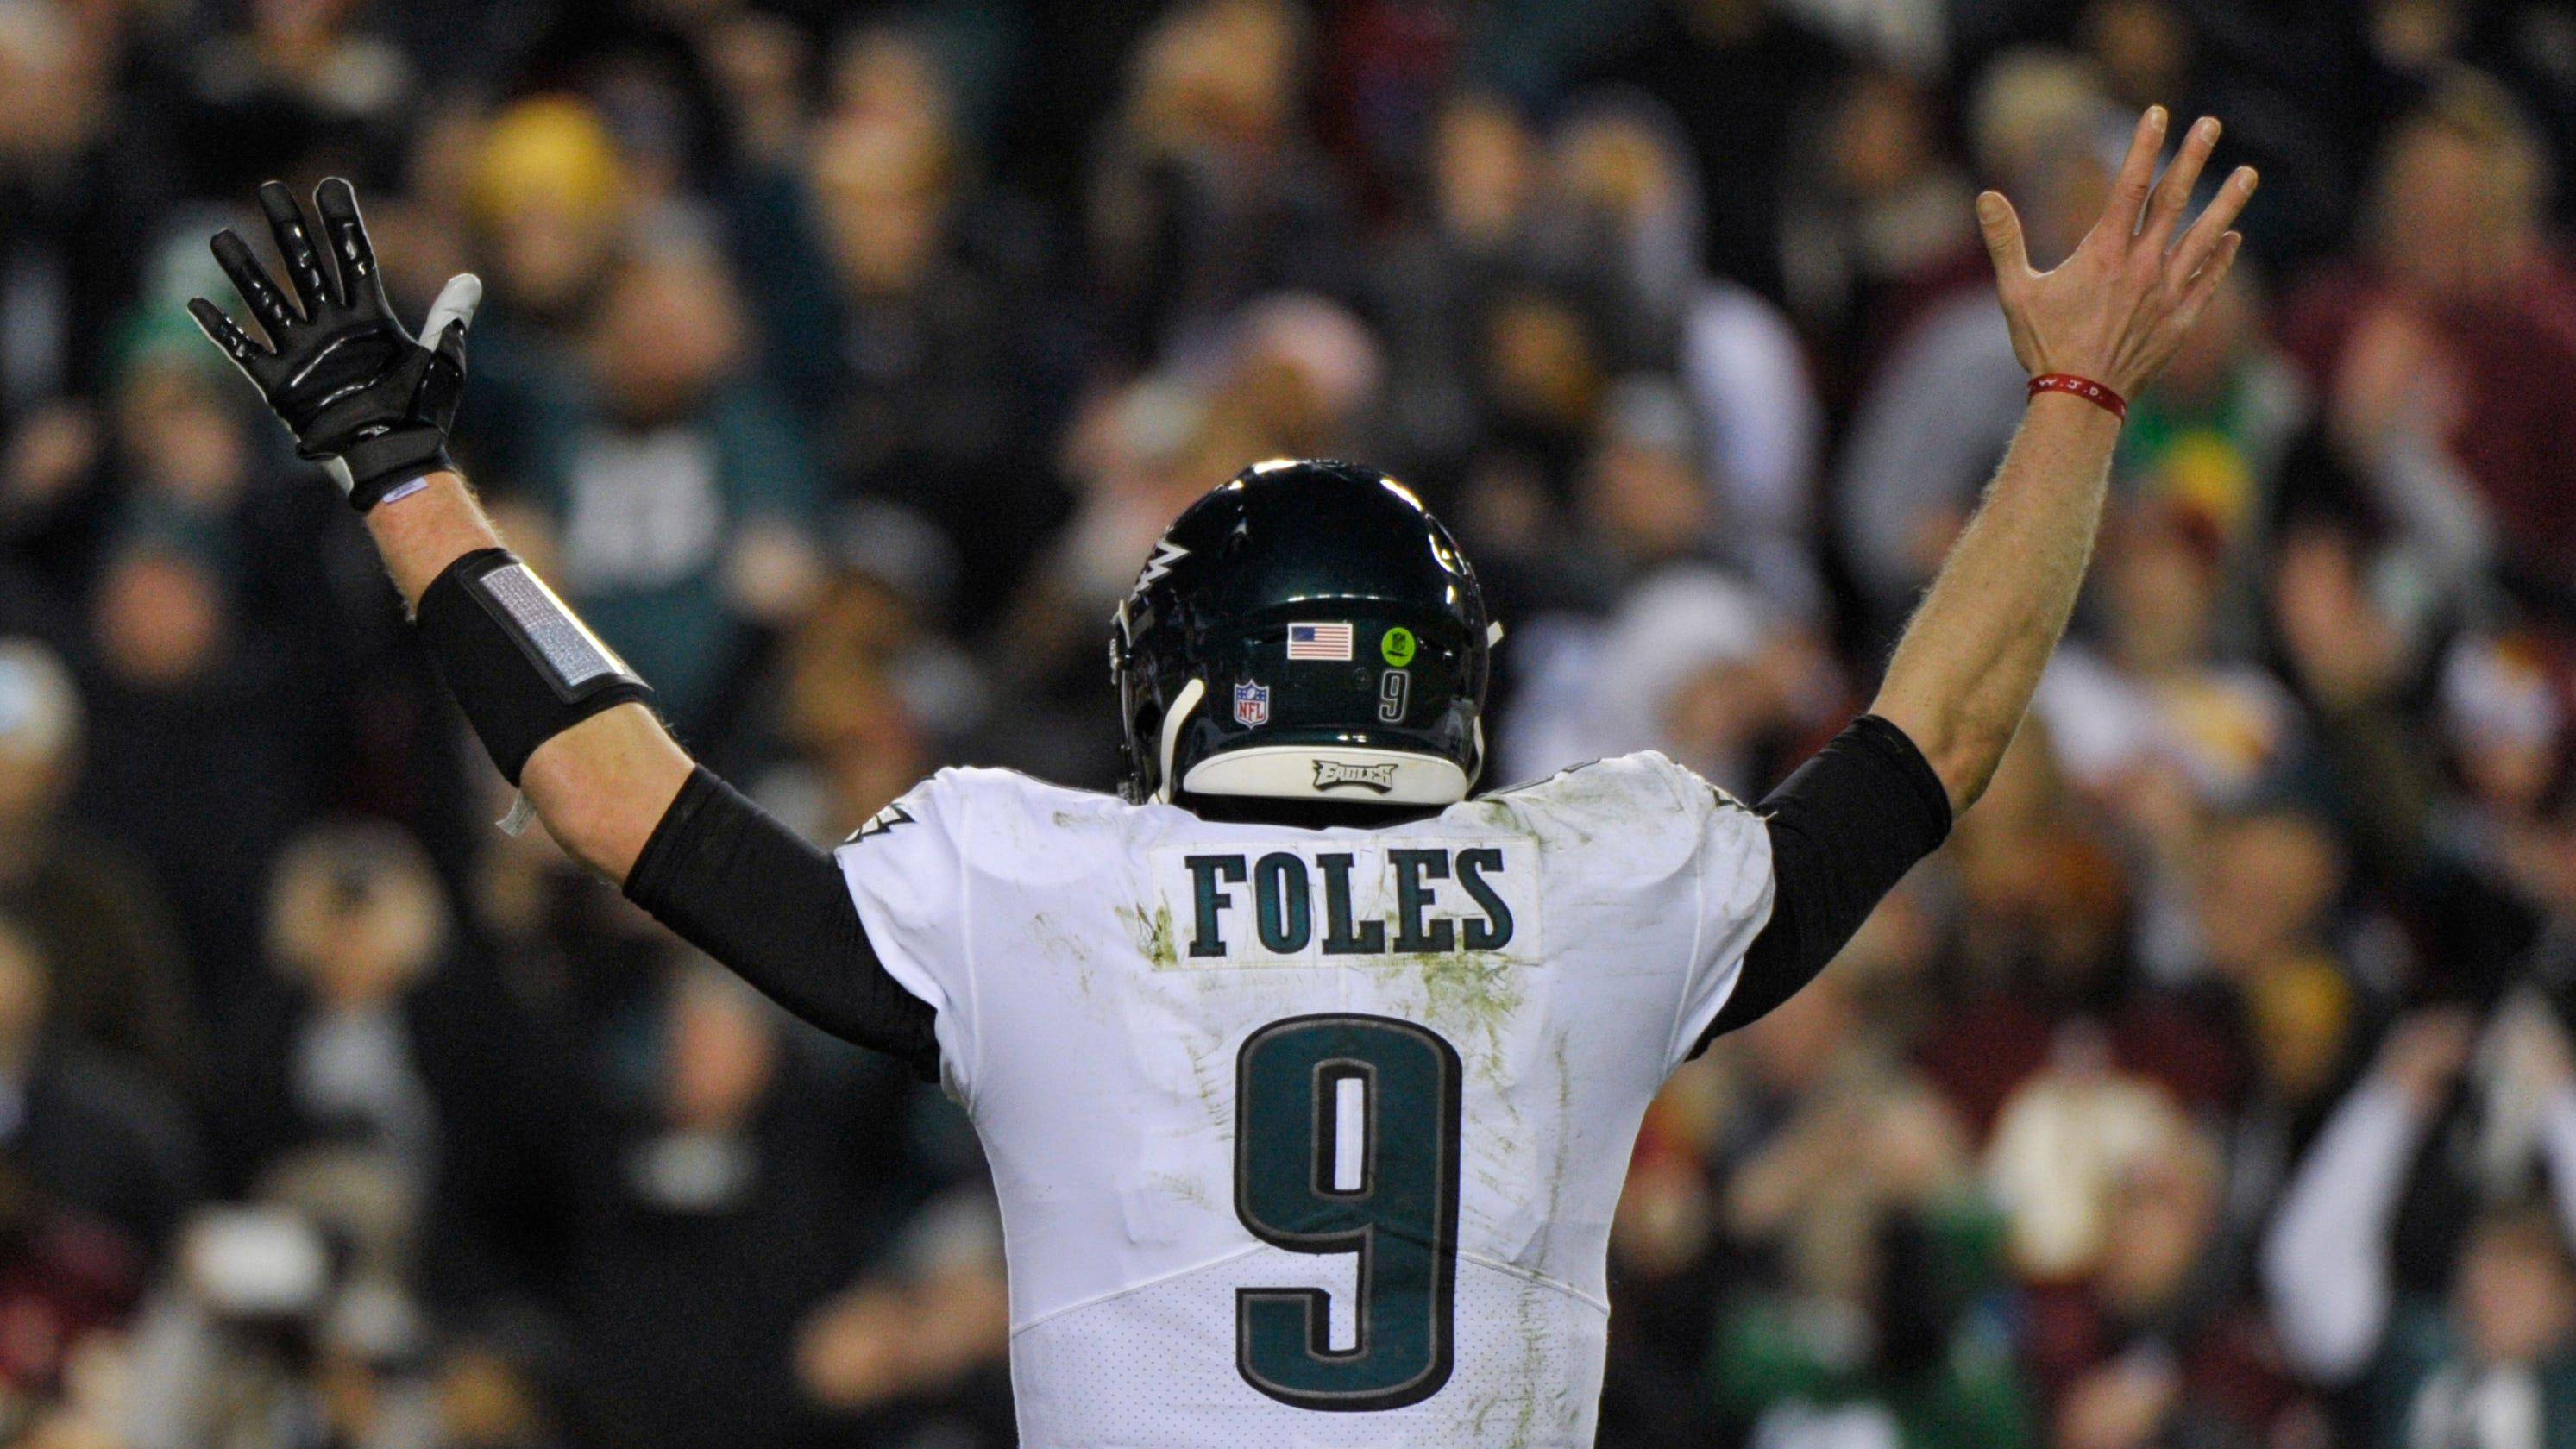 53c2ed8b839 Eagles beat Washington, get help from Bears to make playoffs, but Nick  Foles injured